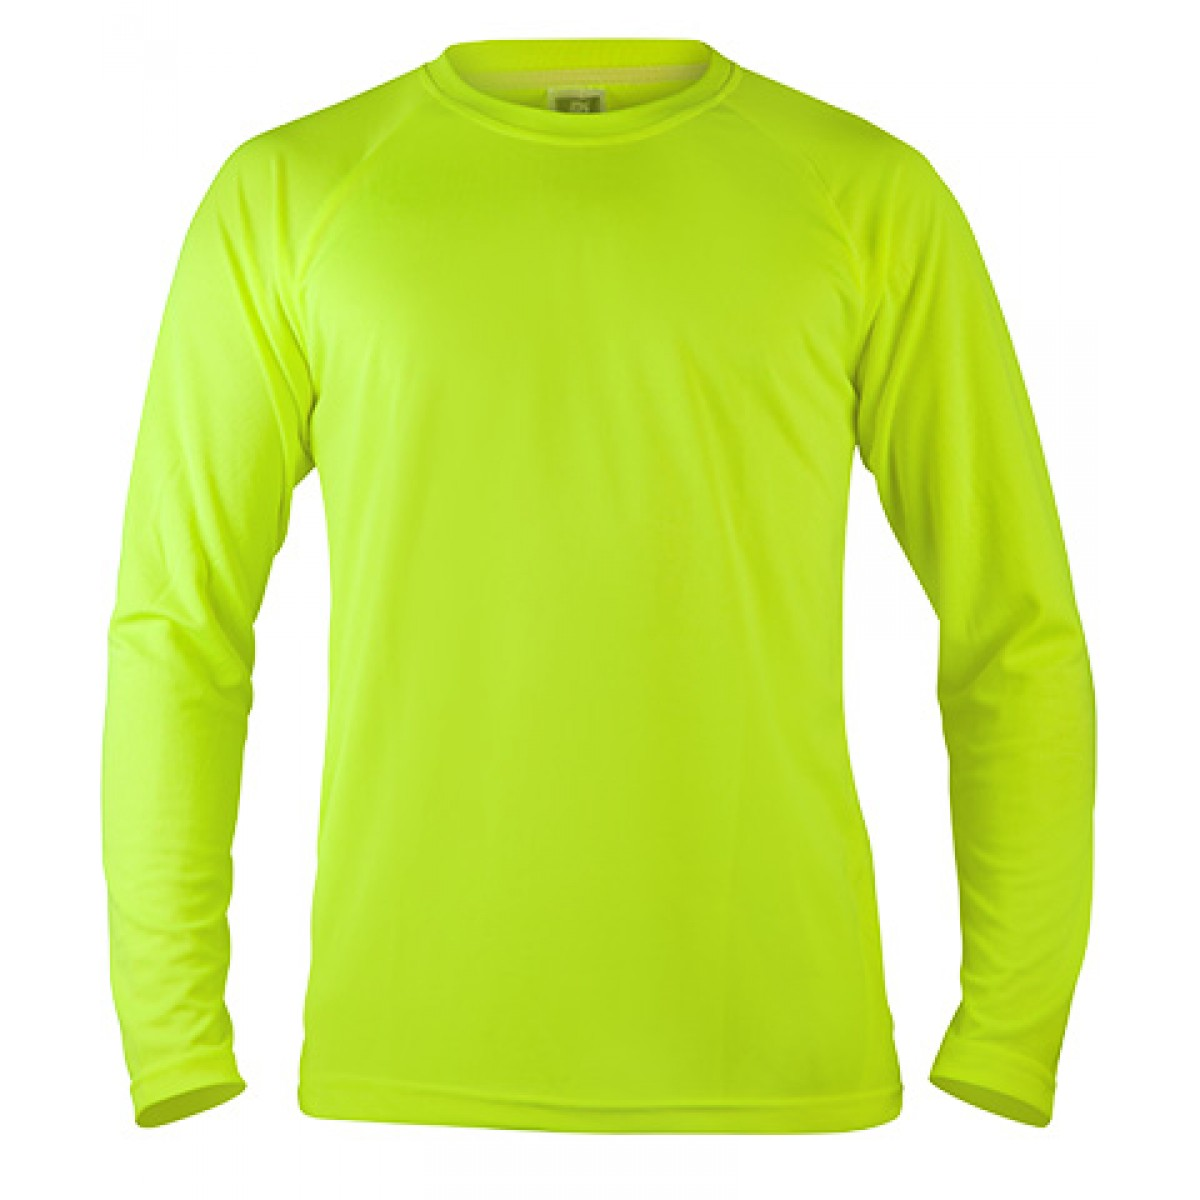 Long Sleeve Performance -Safety Green-YM